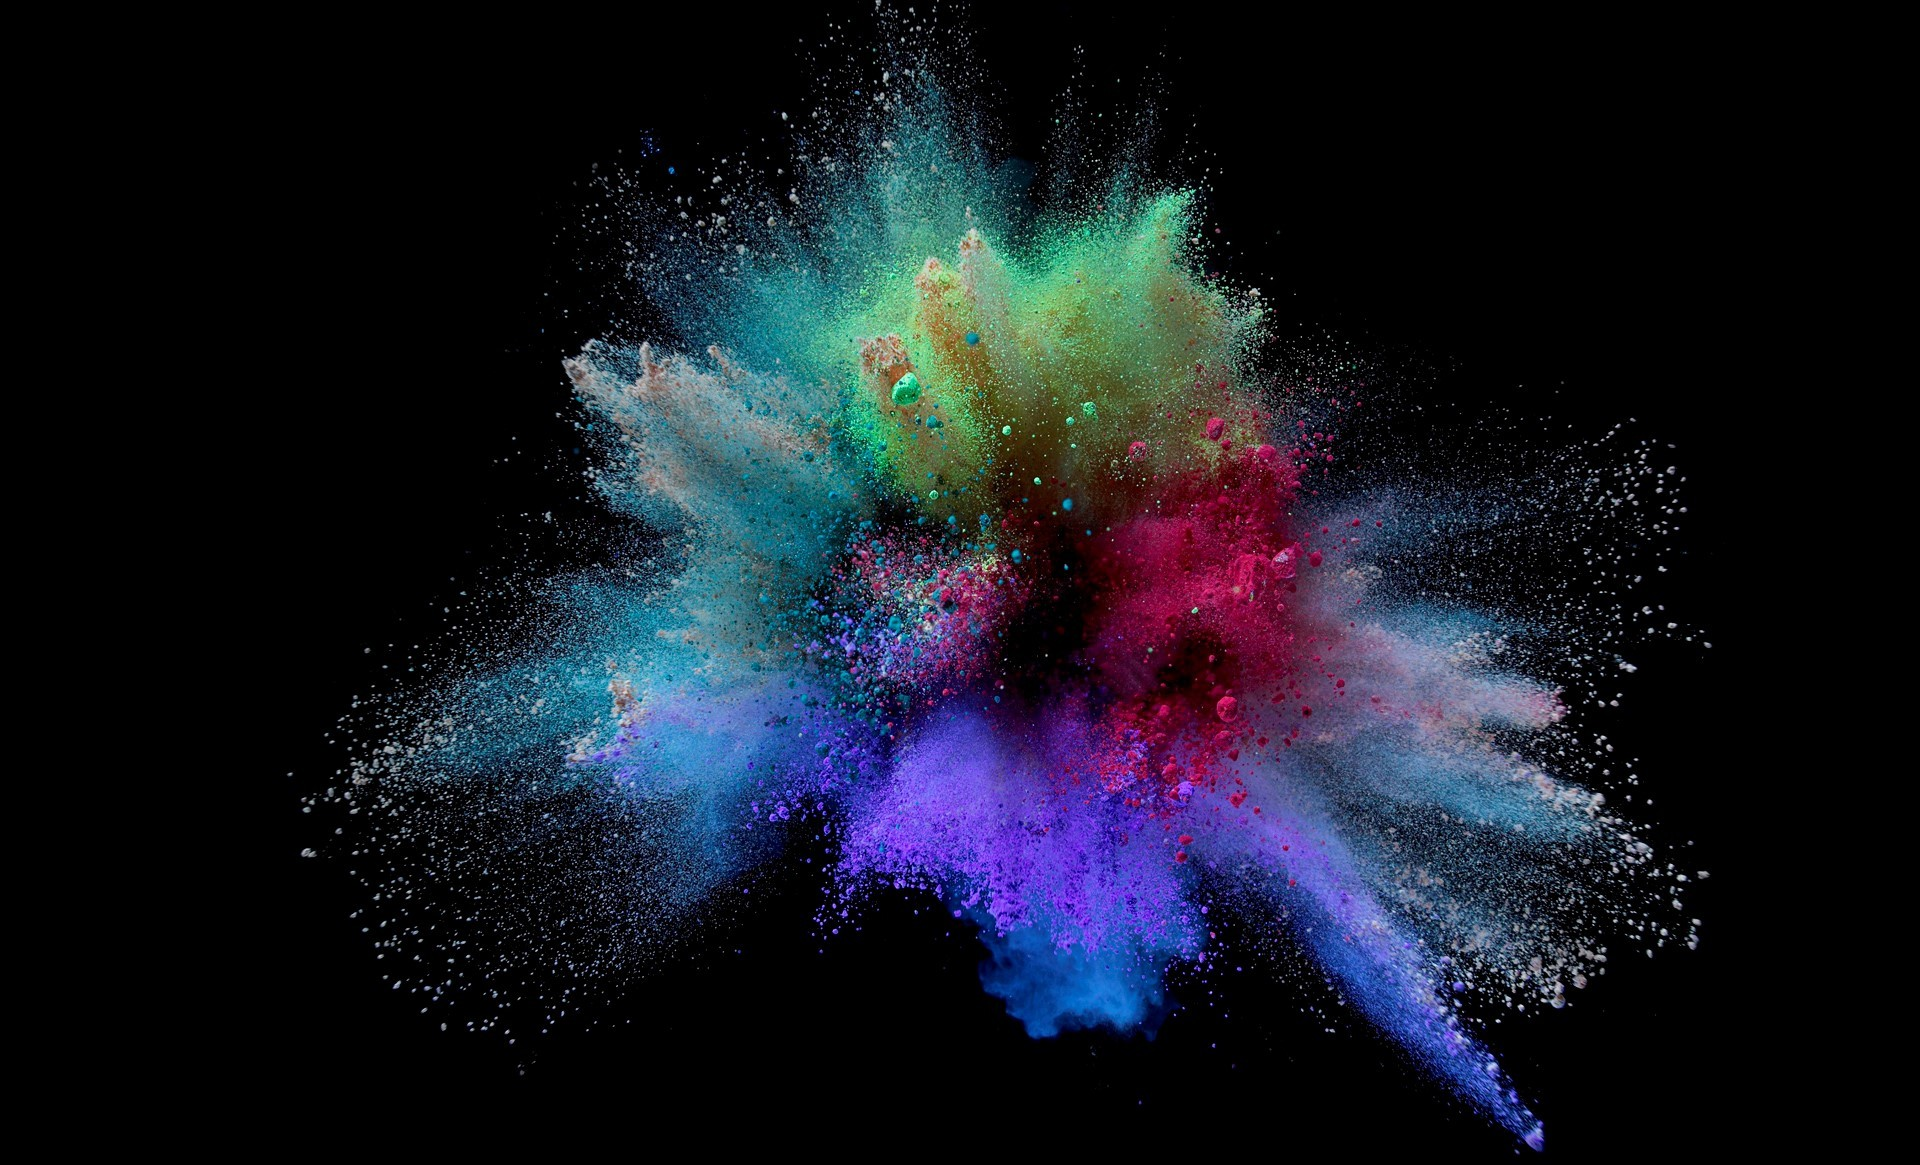 Samsung Galaxy S3 3d Wallpaper Free Download Powder Colorful Splash Wallpaper 3d And Abstract